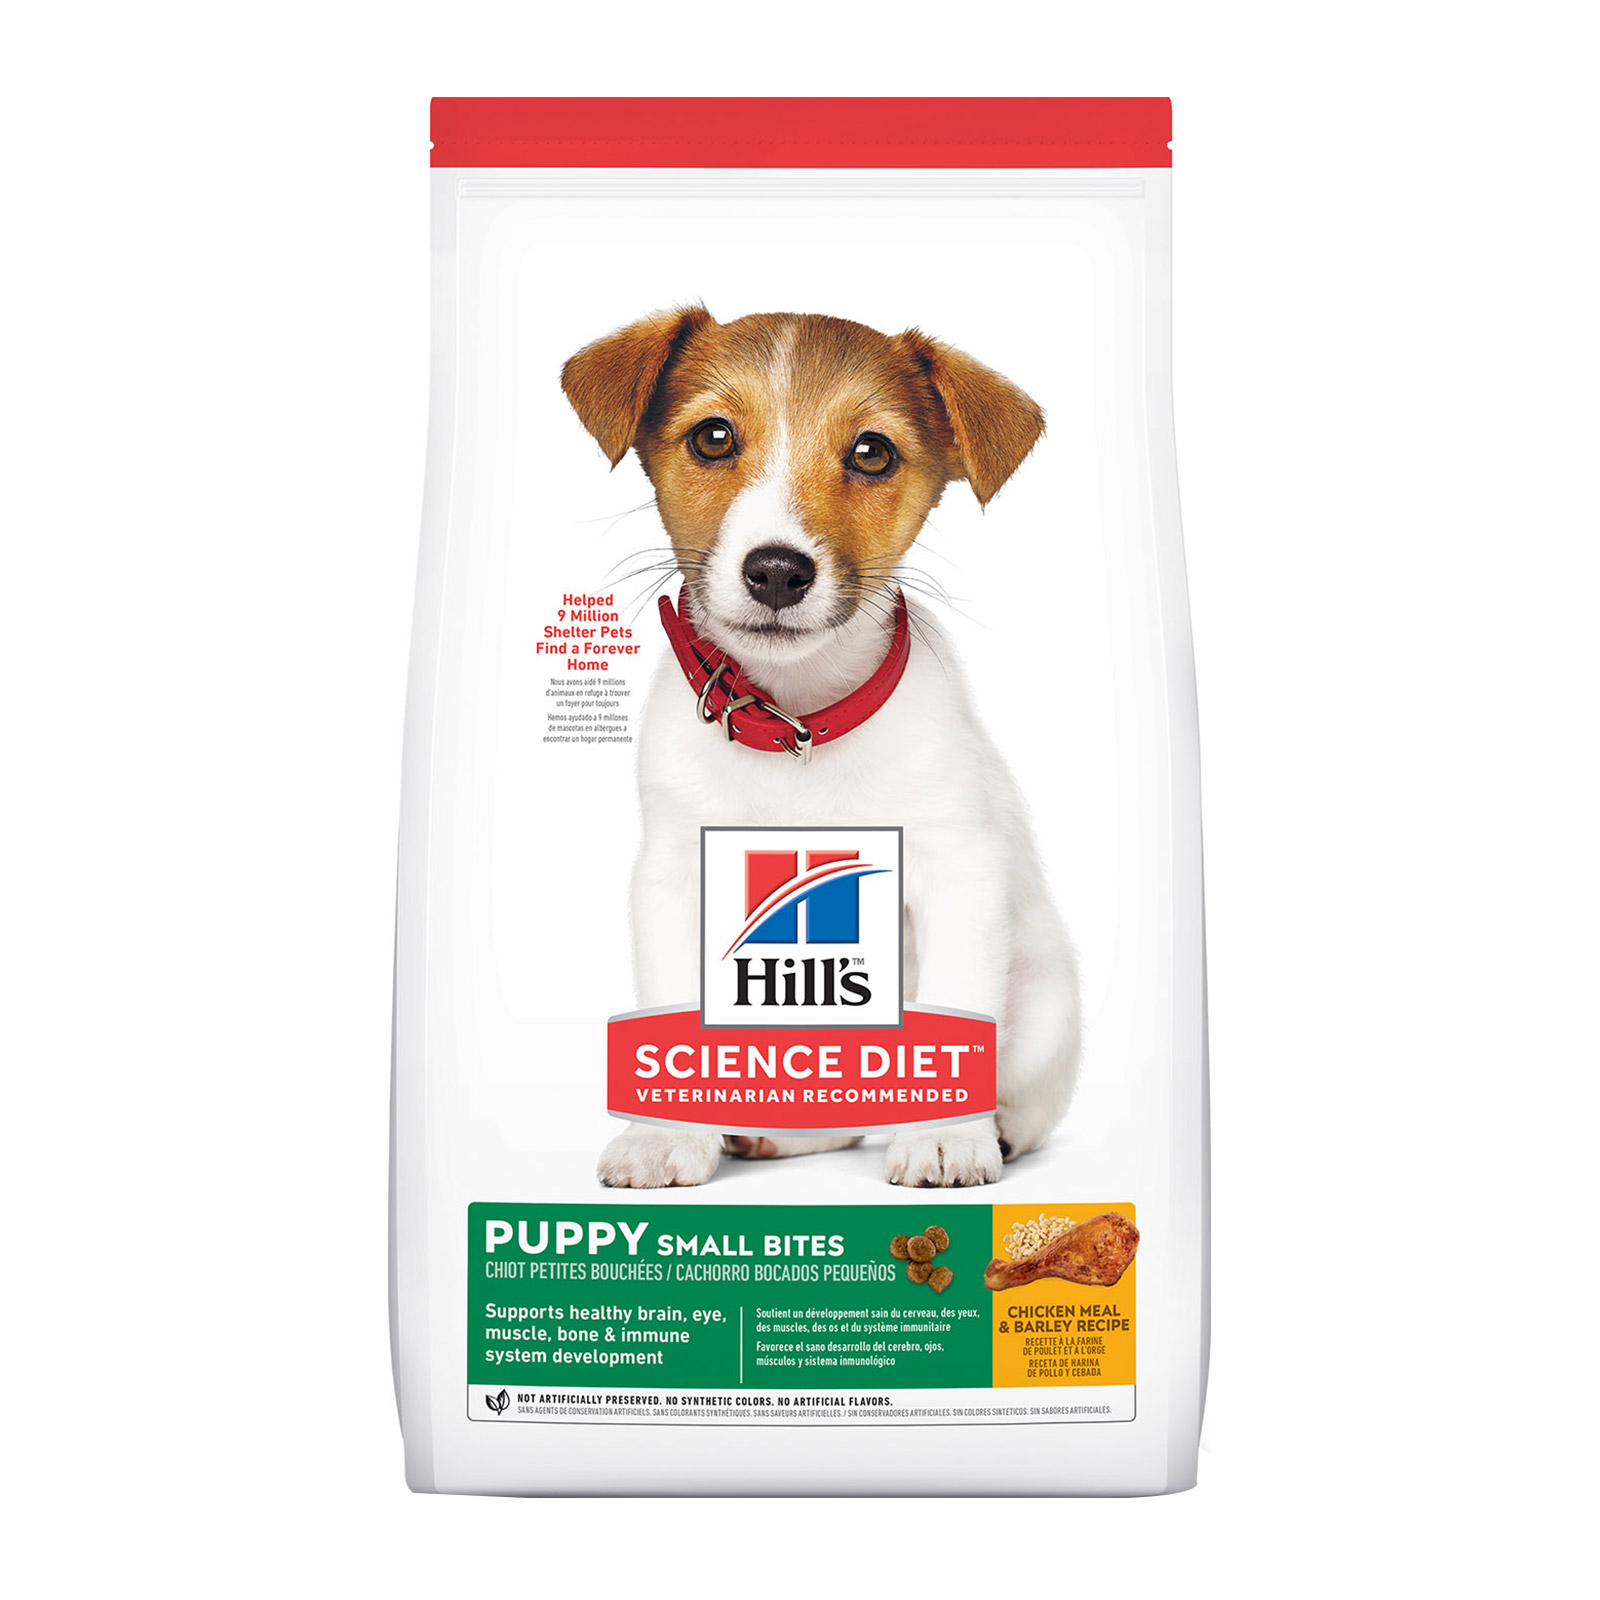 Hill's Science Diet Puppy Small Bites Chicken & Barley Dry Dog Food